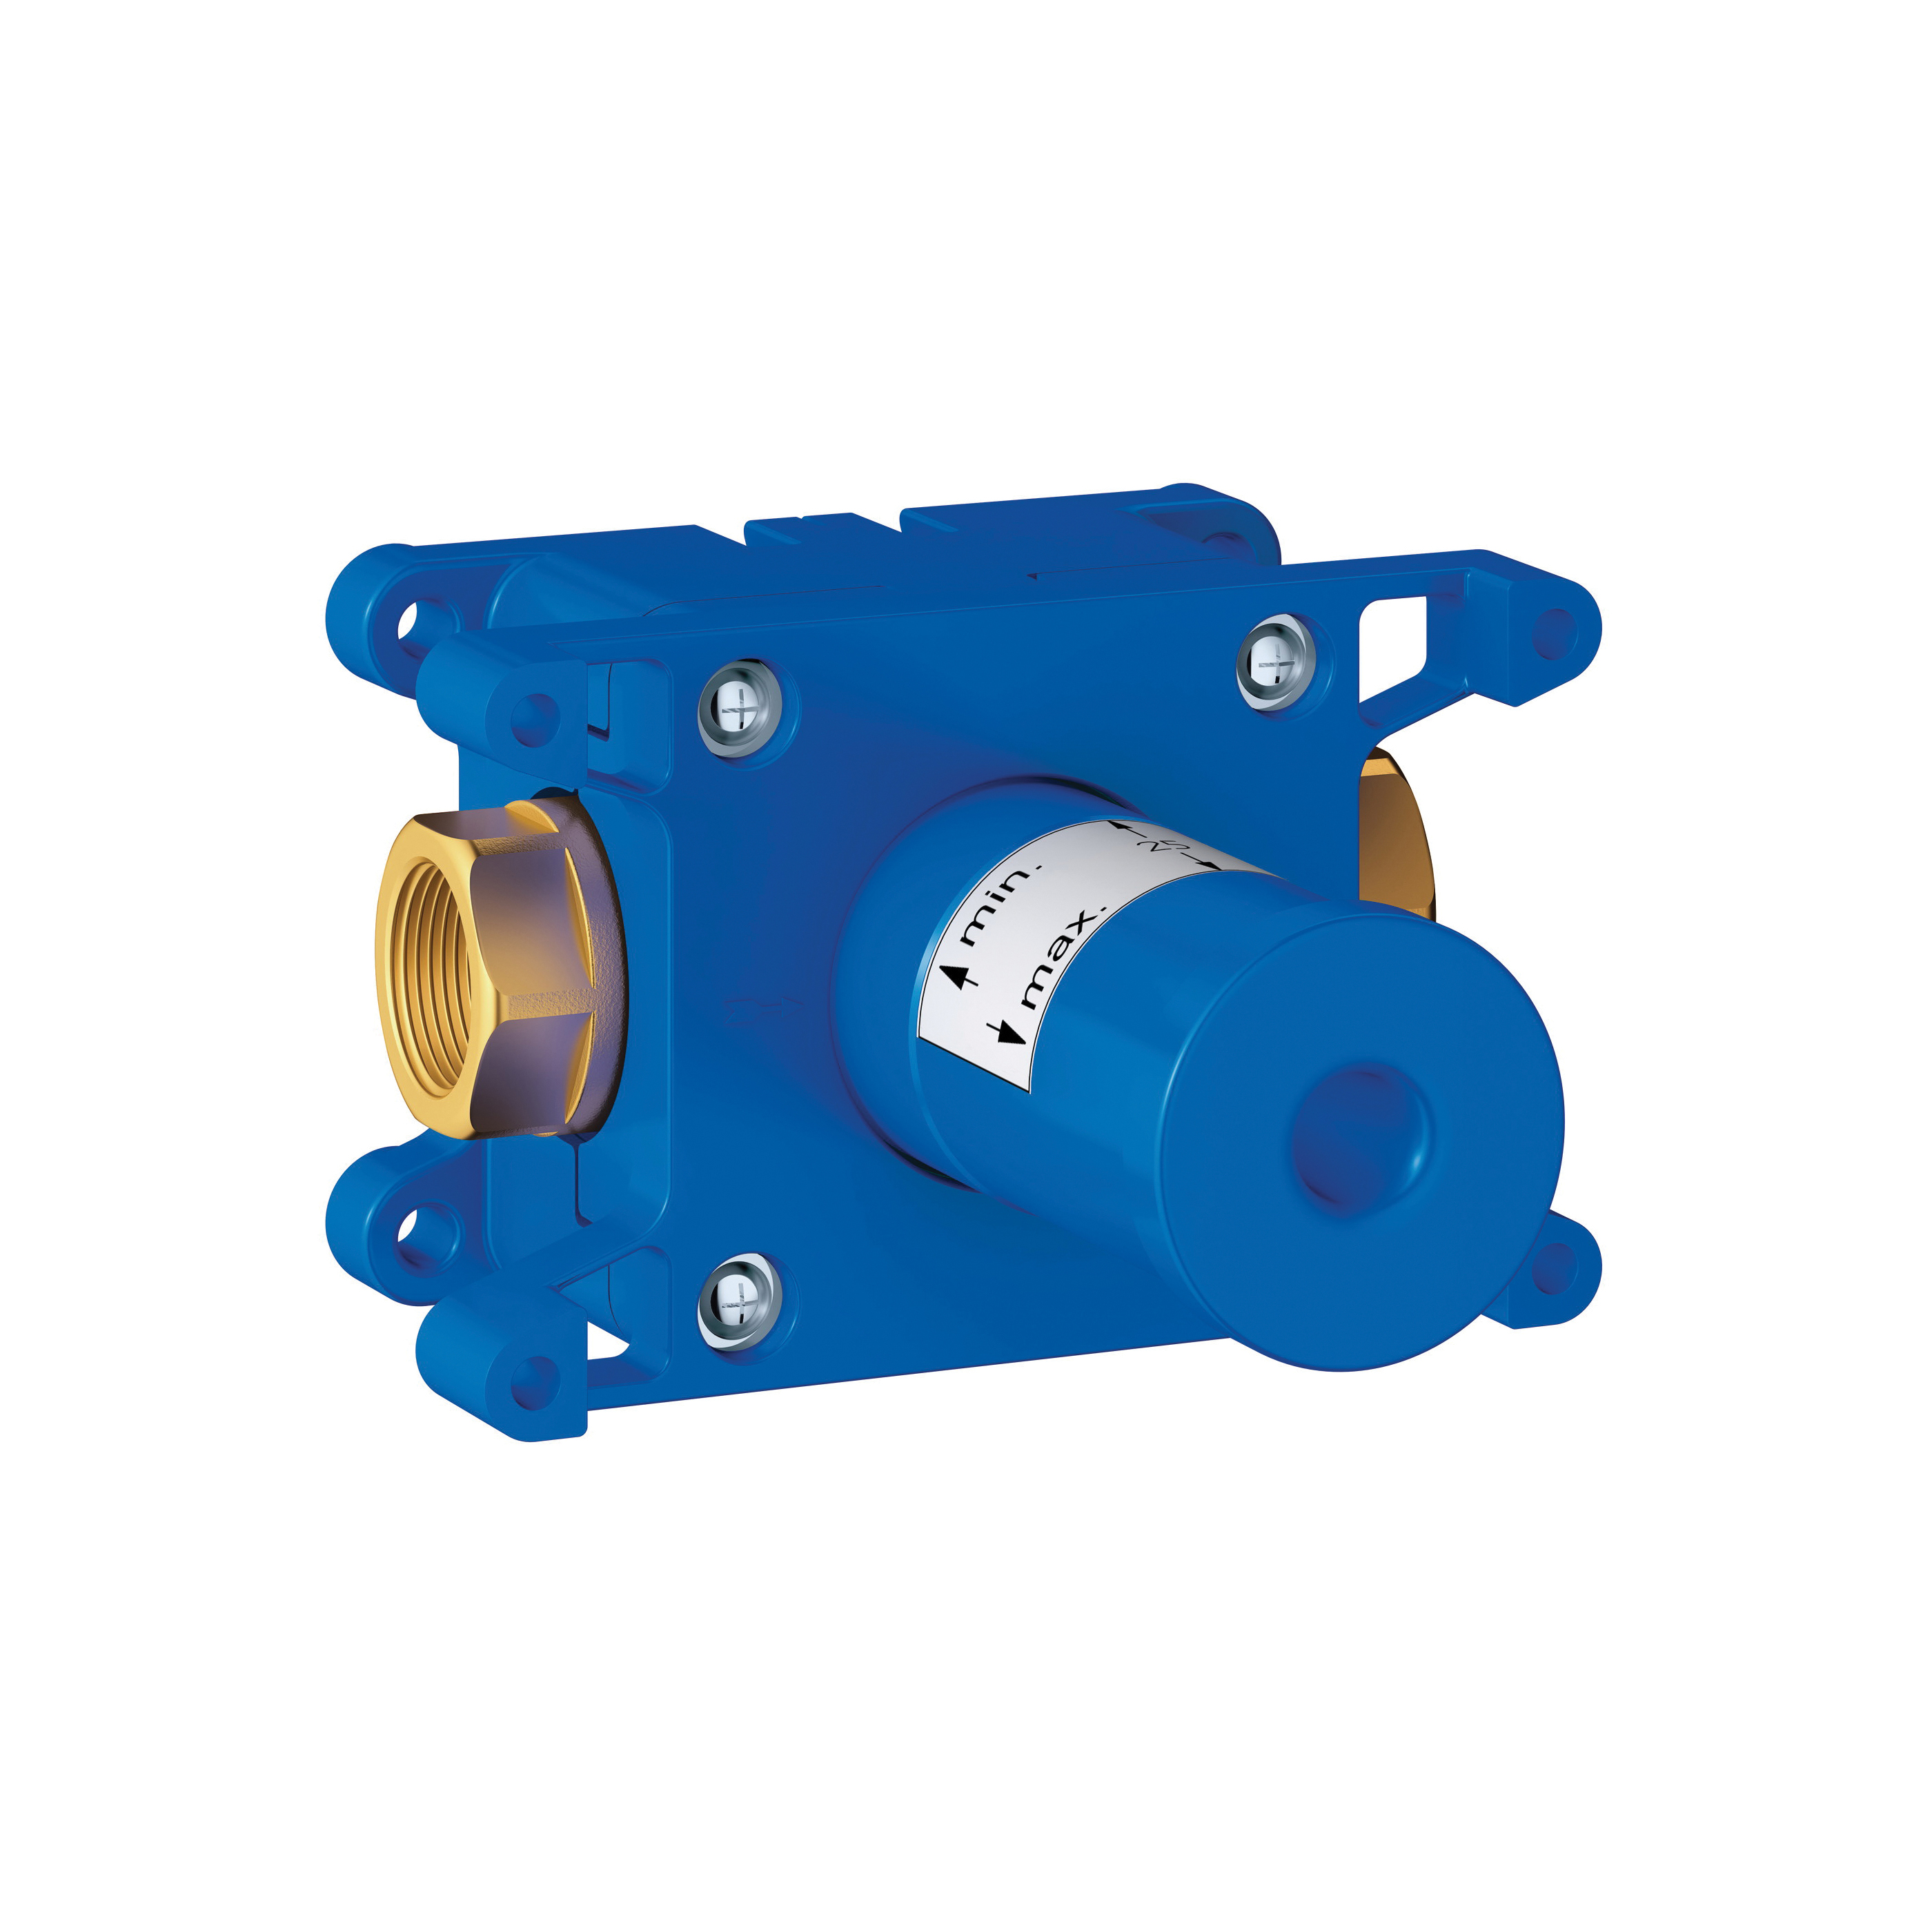 GROHE 35029000 Rapido C Single Volume Control Rough-In Valve, 1/2 in FNPT Inlet x 1/2 in FNPT Outlet, 45 psi, 12.6 gpm, Brass Body, Import